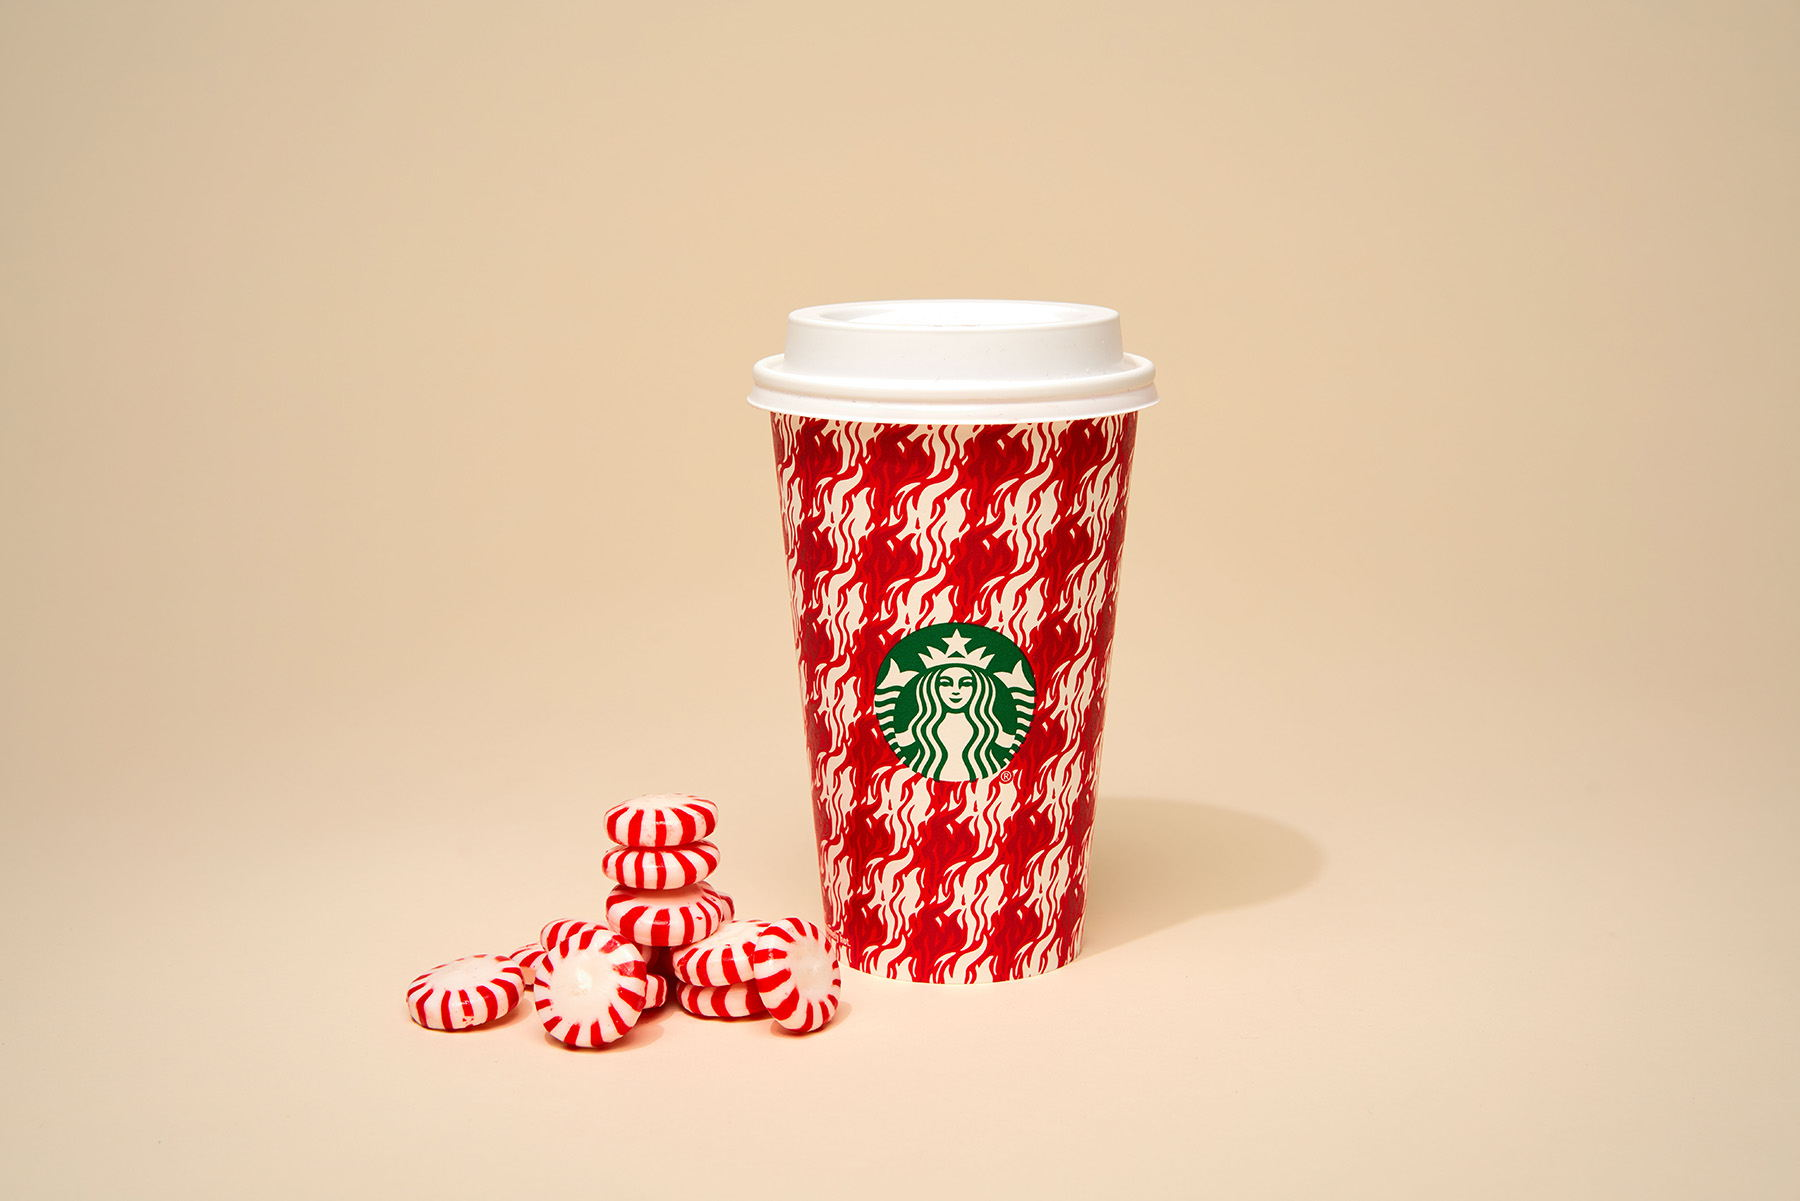 The_Dieline_Starbucks_Holiday-JStrutz-103118-0646_1.jpg